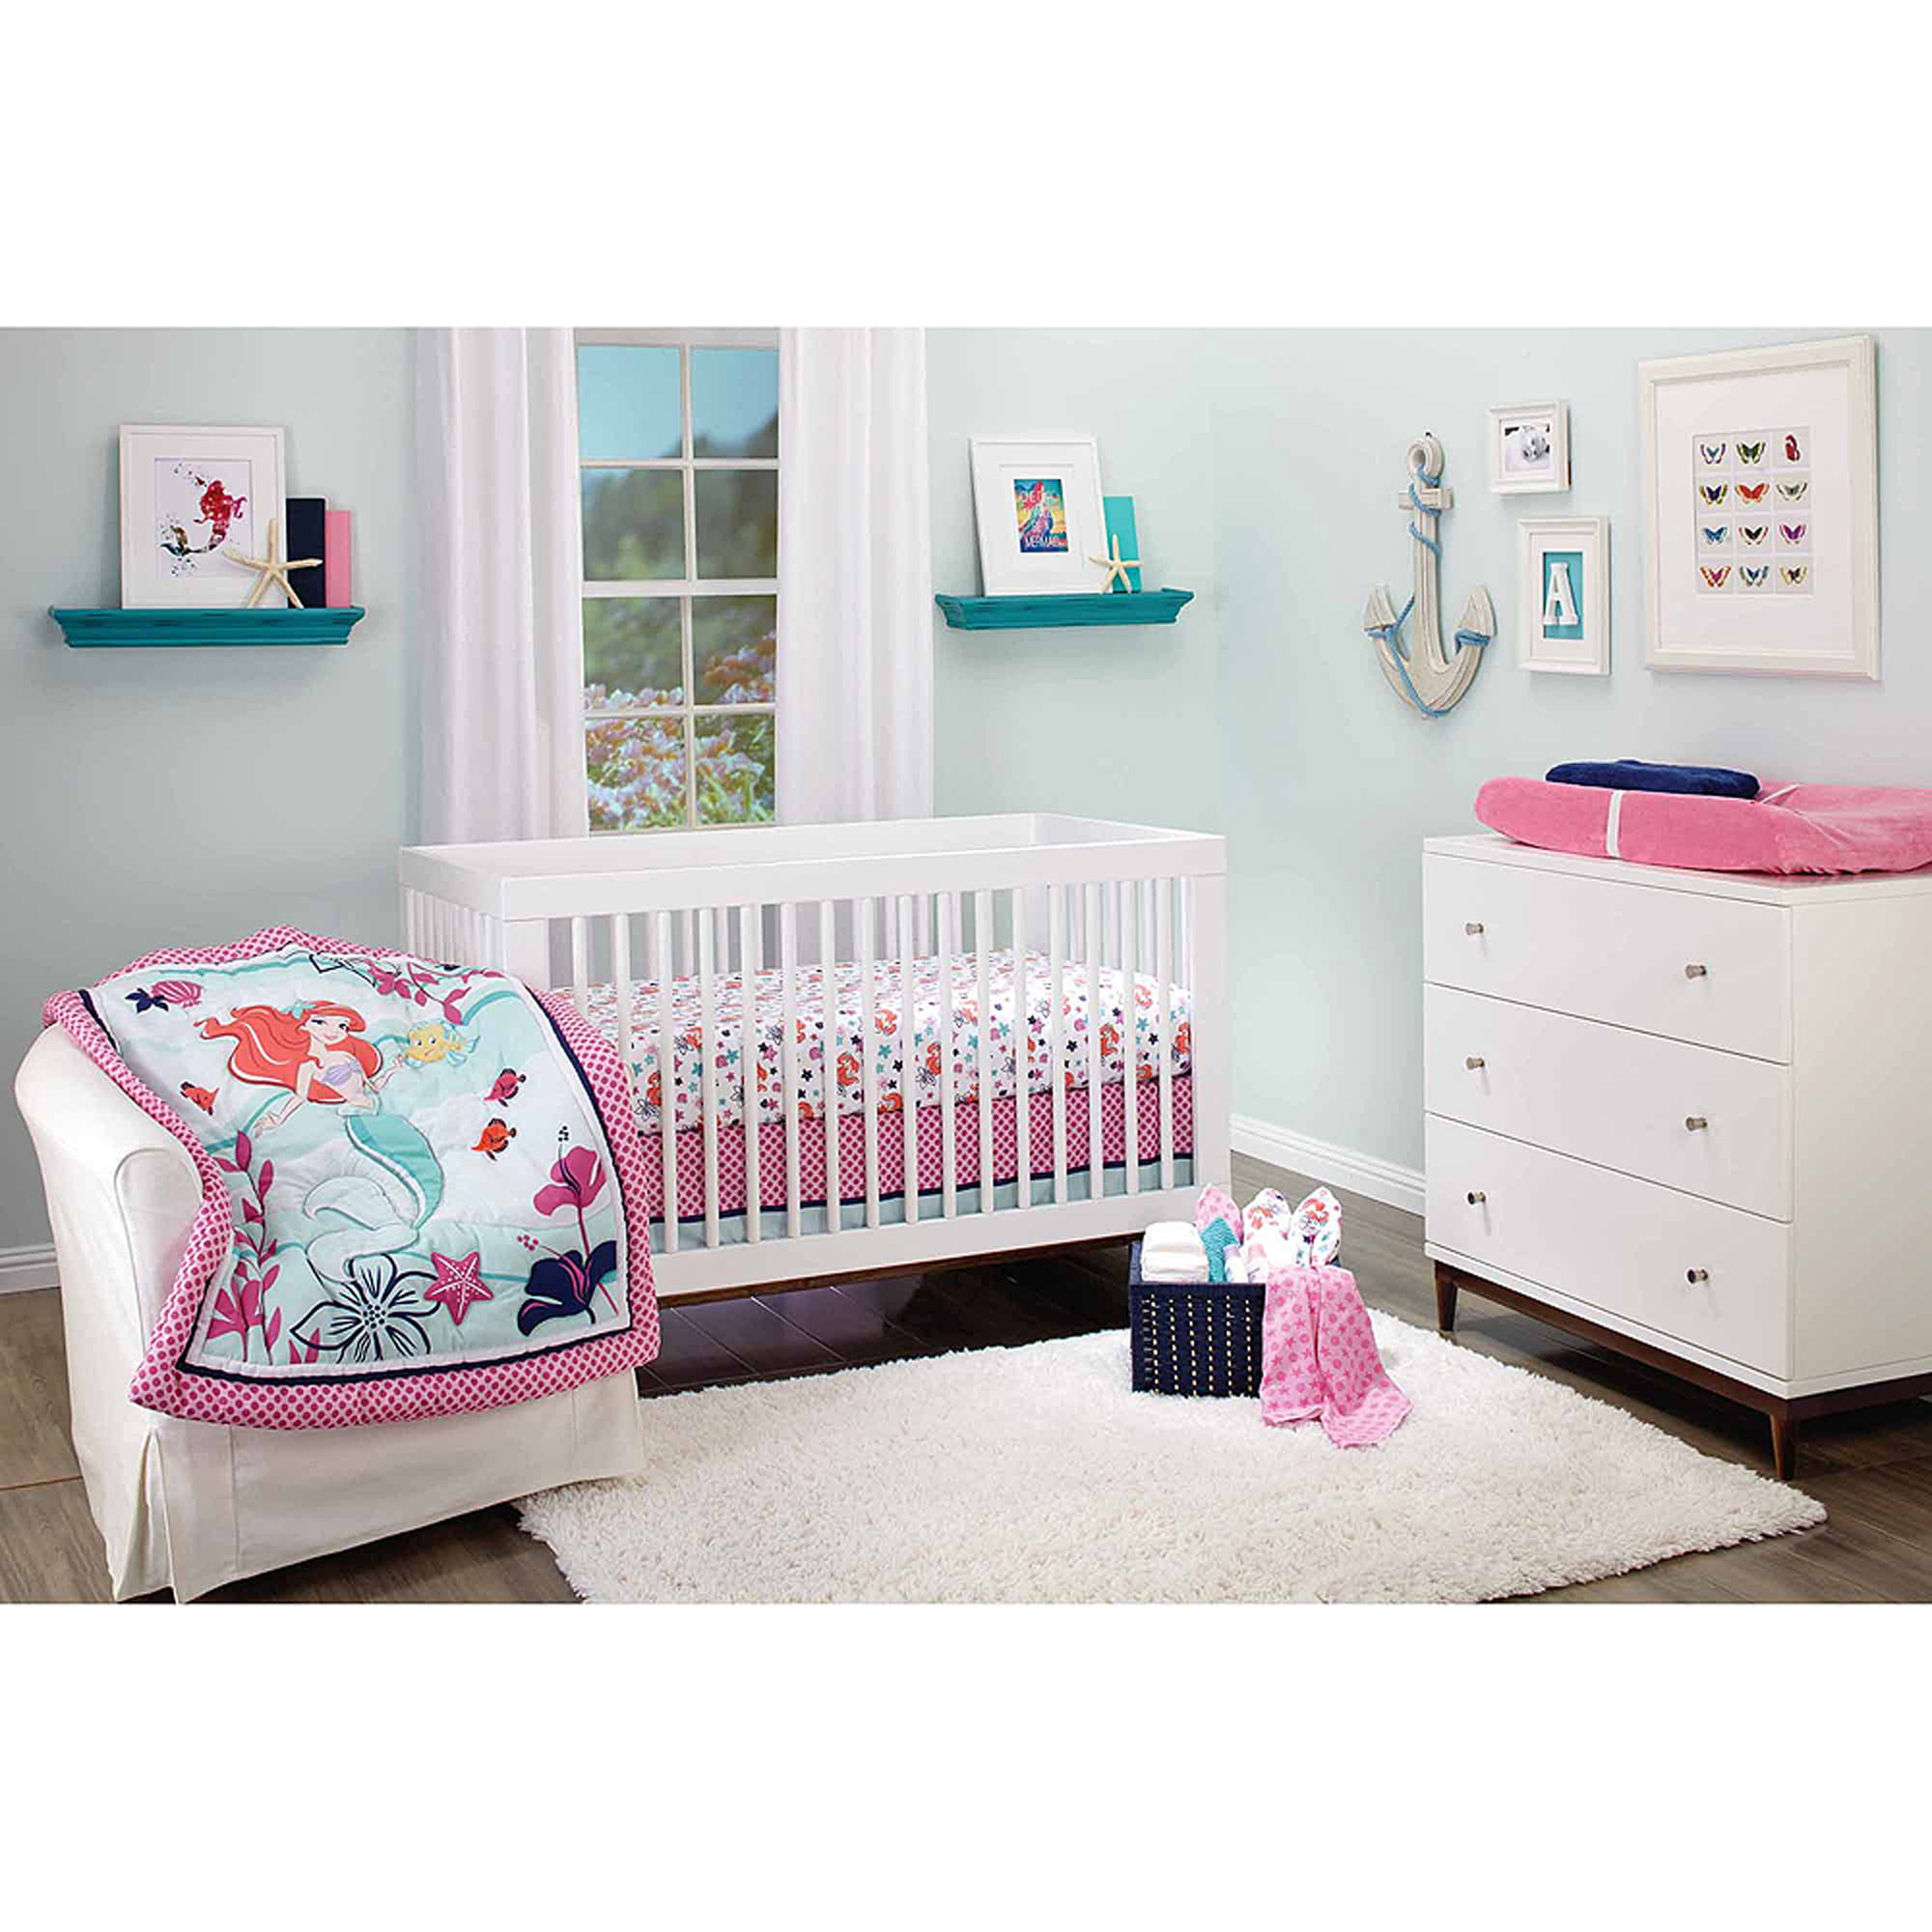 Disney Monsters On the Go 4 Piece Crib Bedding Set - Walmart.com